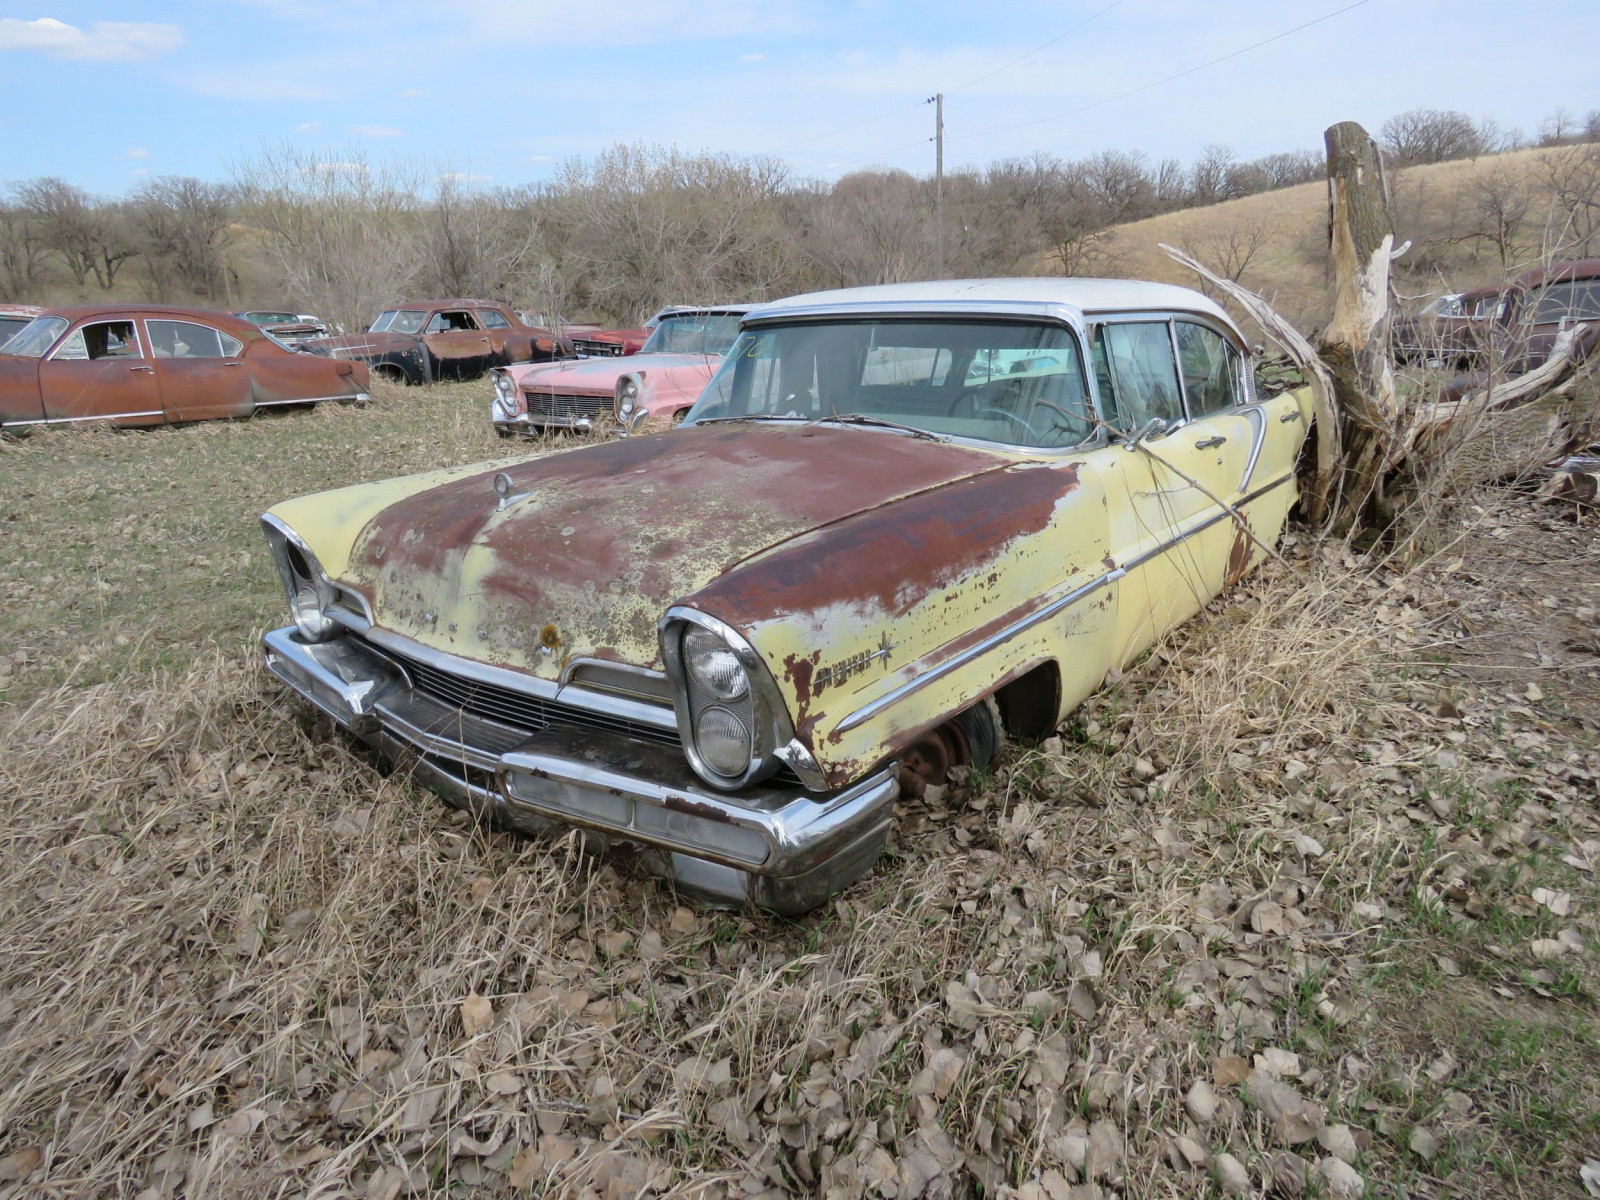 1958 Lincoln Premier 4dr Sedan for Project or parts - Image 2